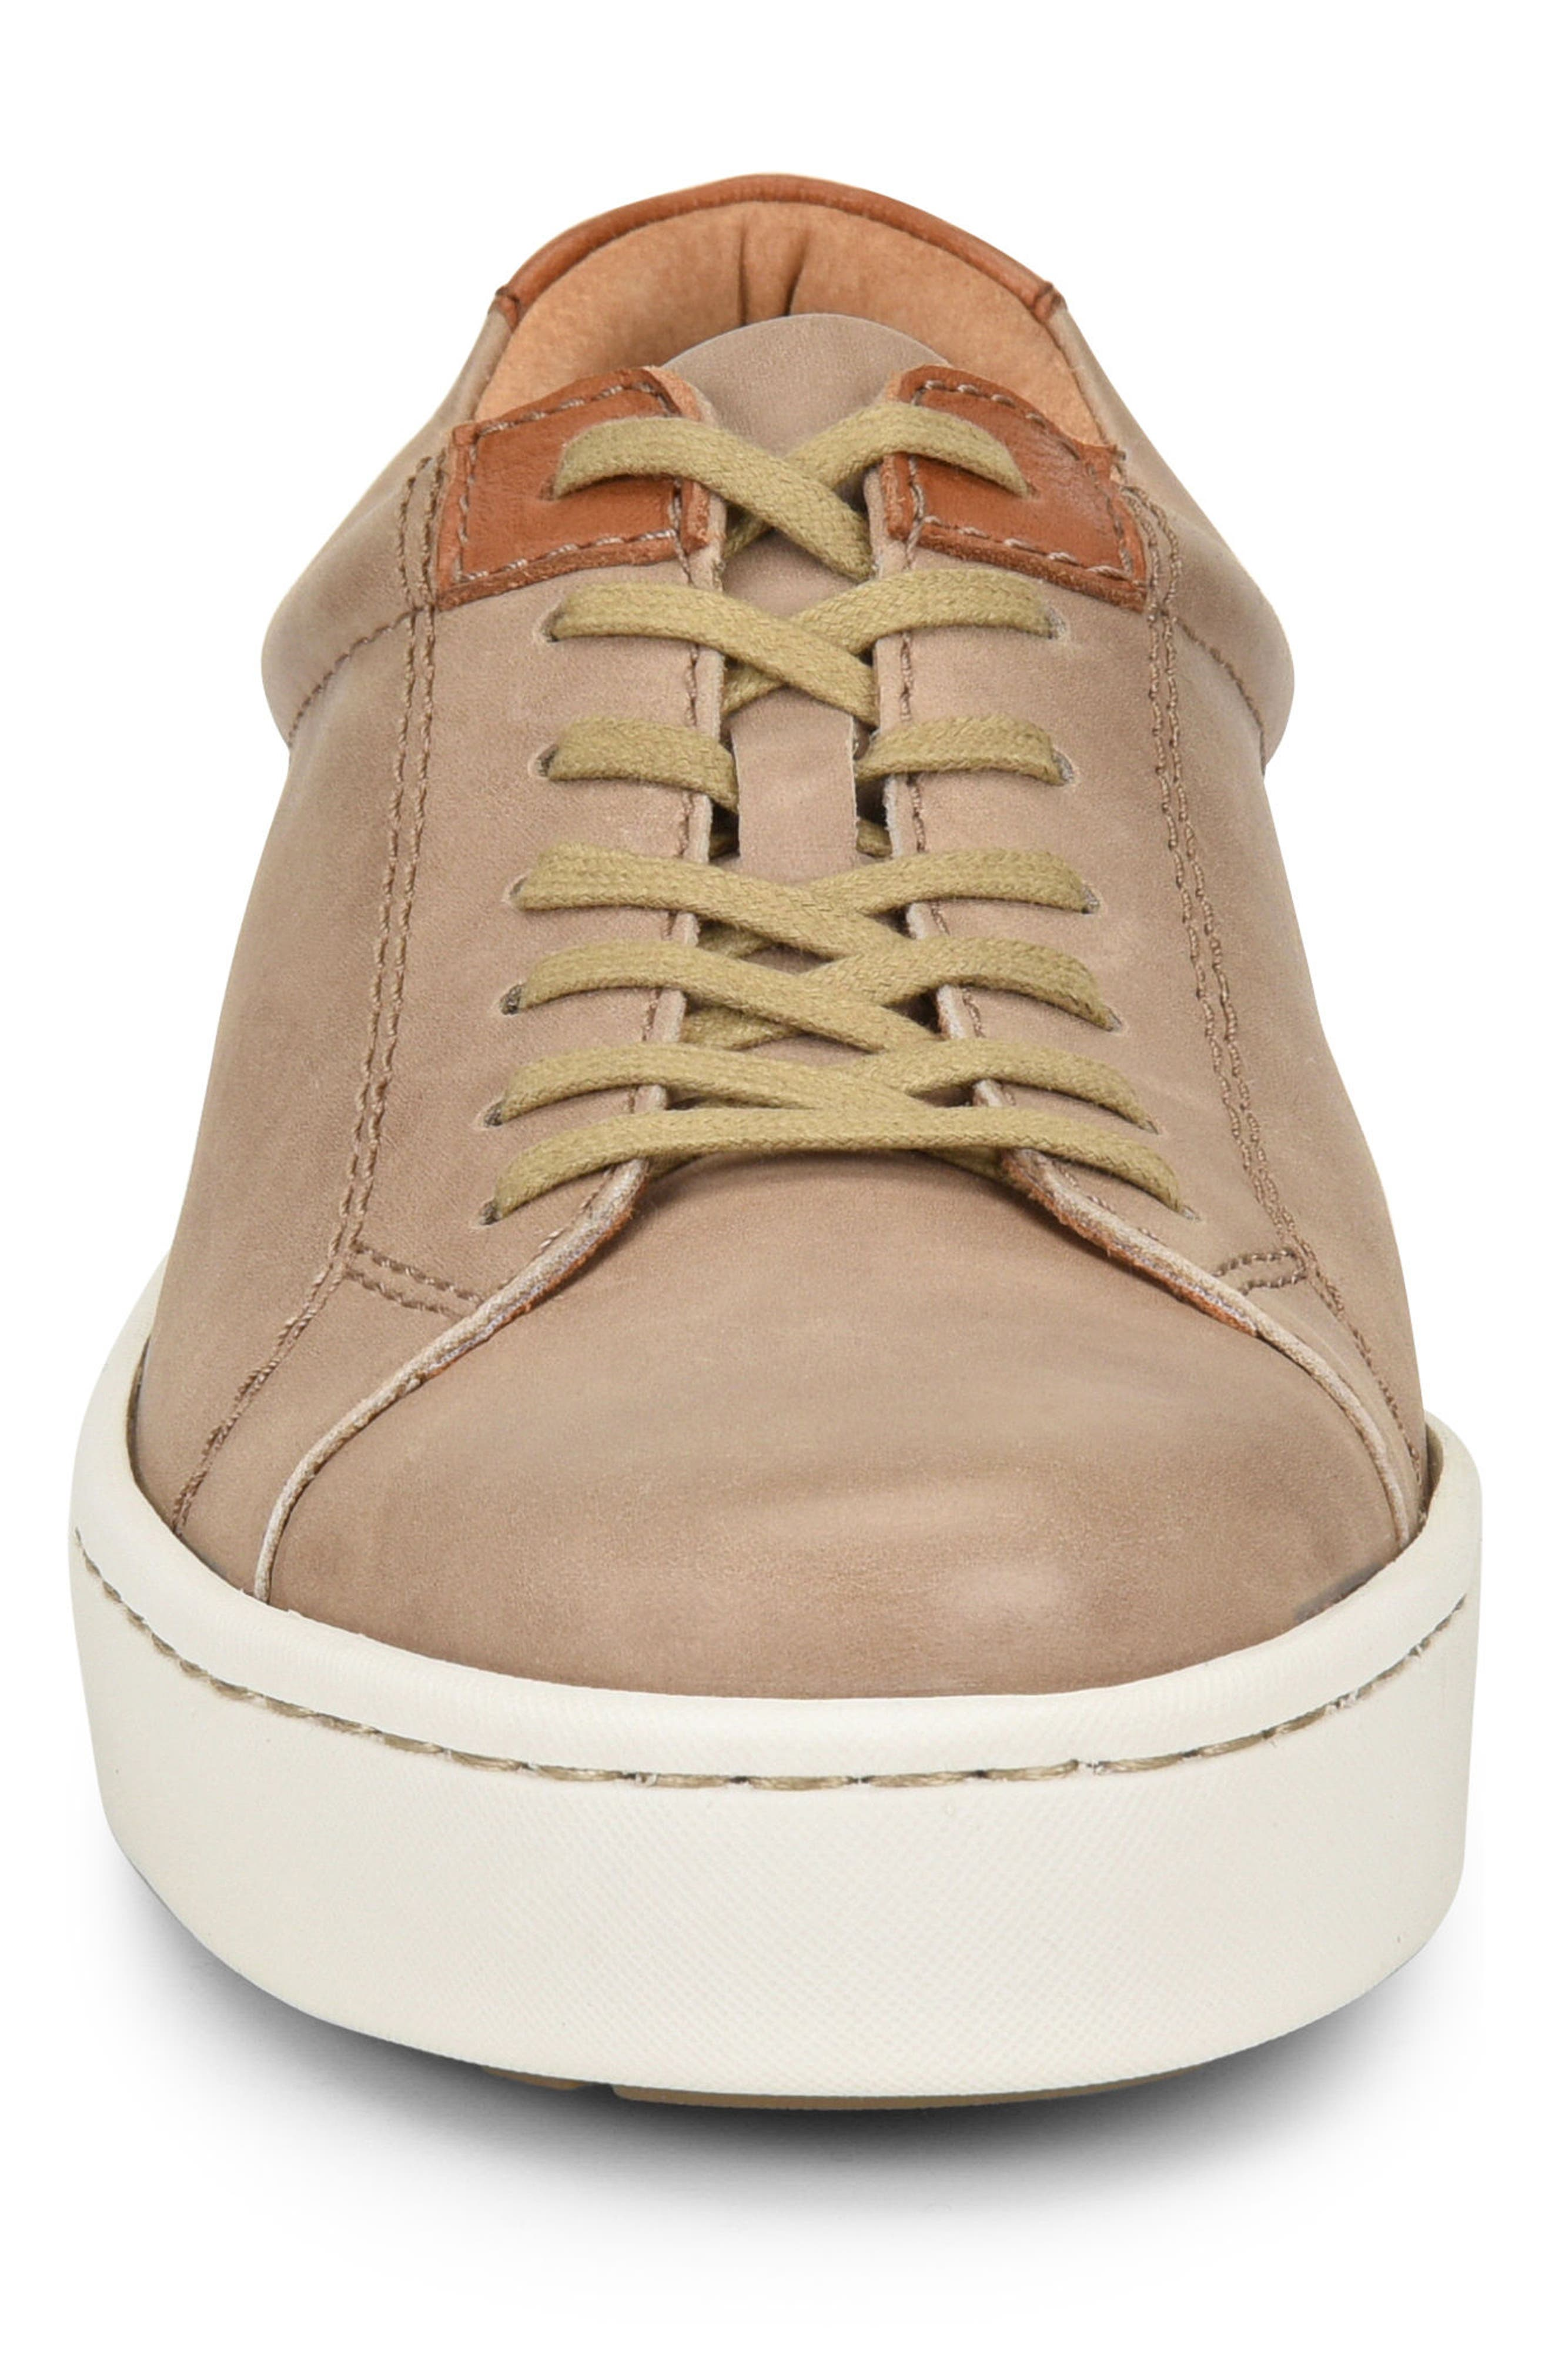 Jib Sneaker,                             Alternate thumbnail 4, color,                             Taupe/ Brown Leather